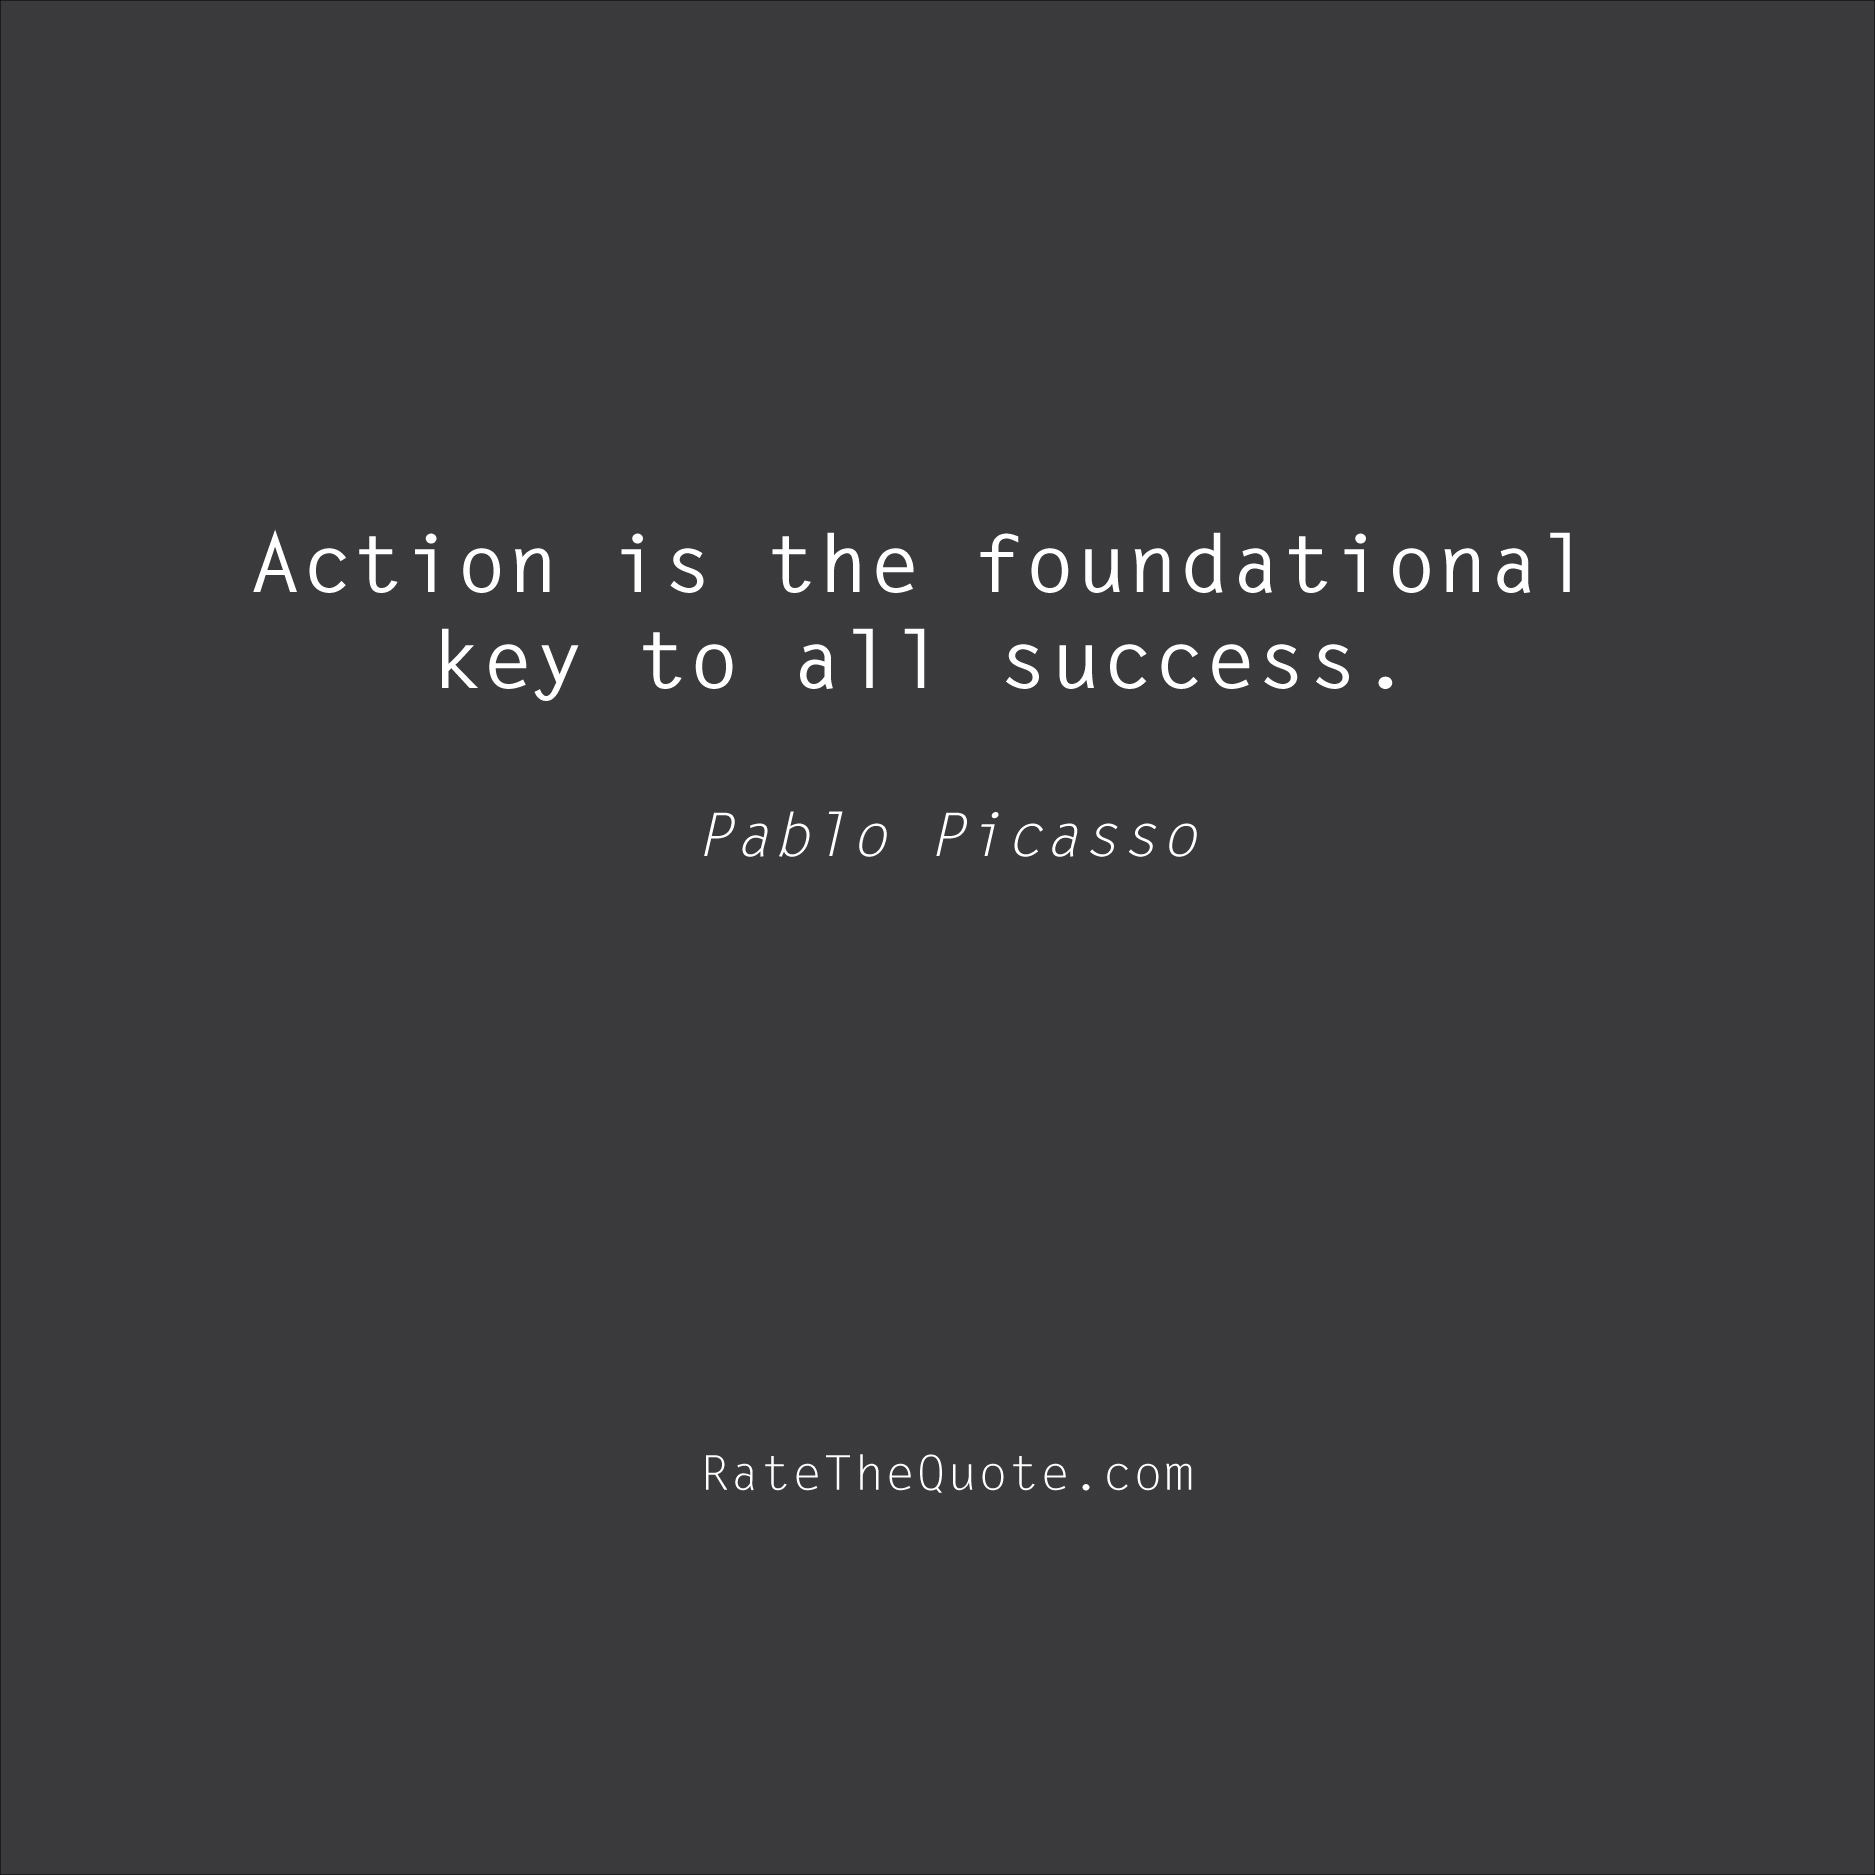 Success Quotes Action is the foundational key to all success. Pablo Picasso